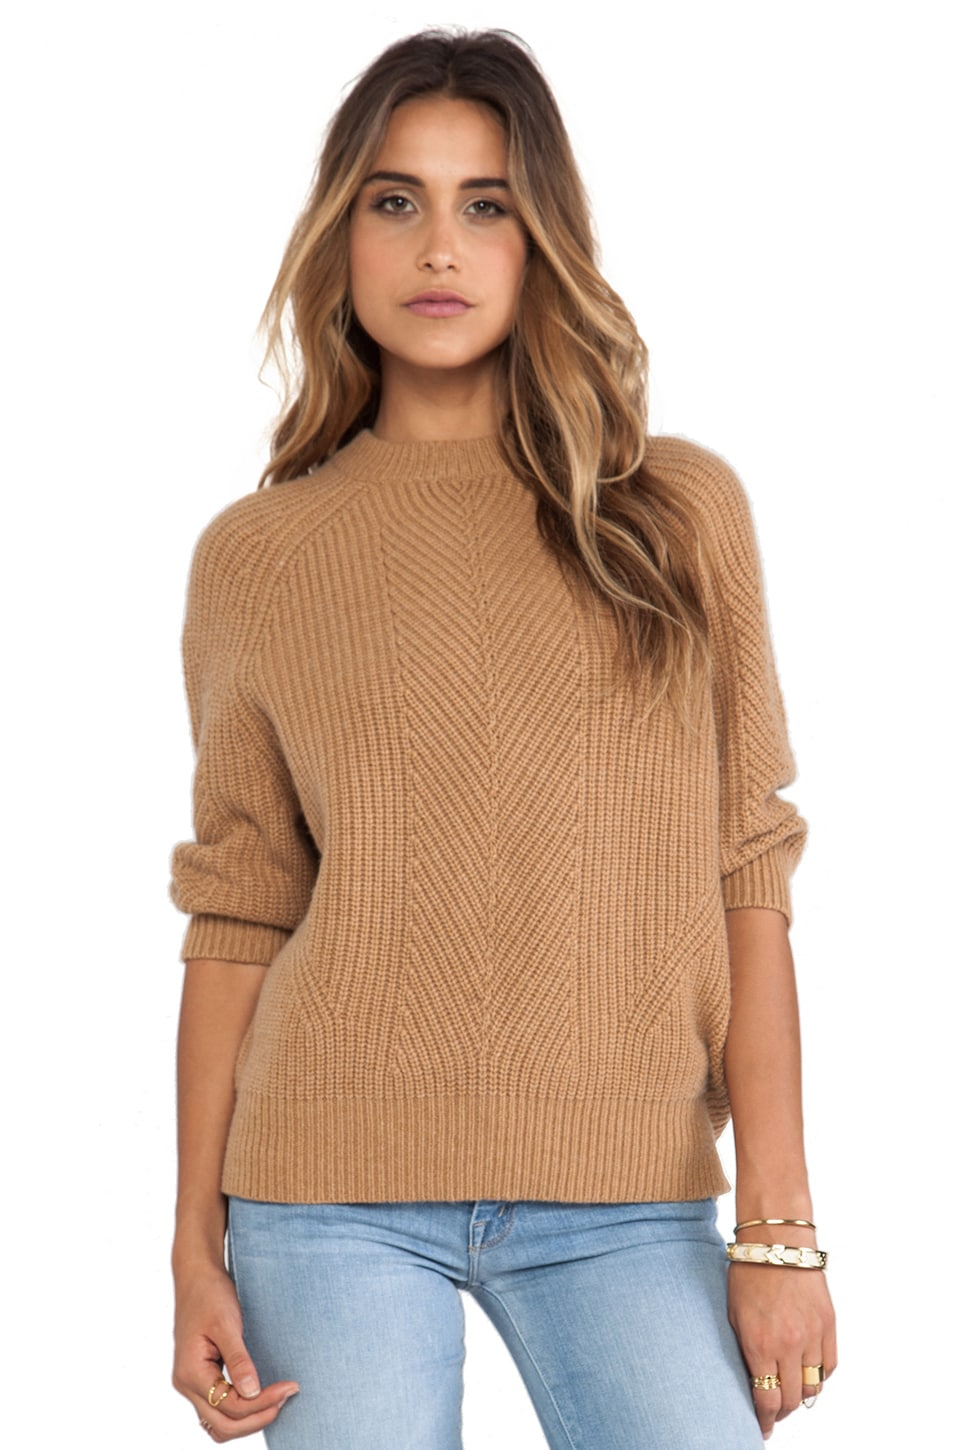 DemyLee Chelsea Cashmere Pullover in Camel